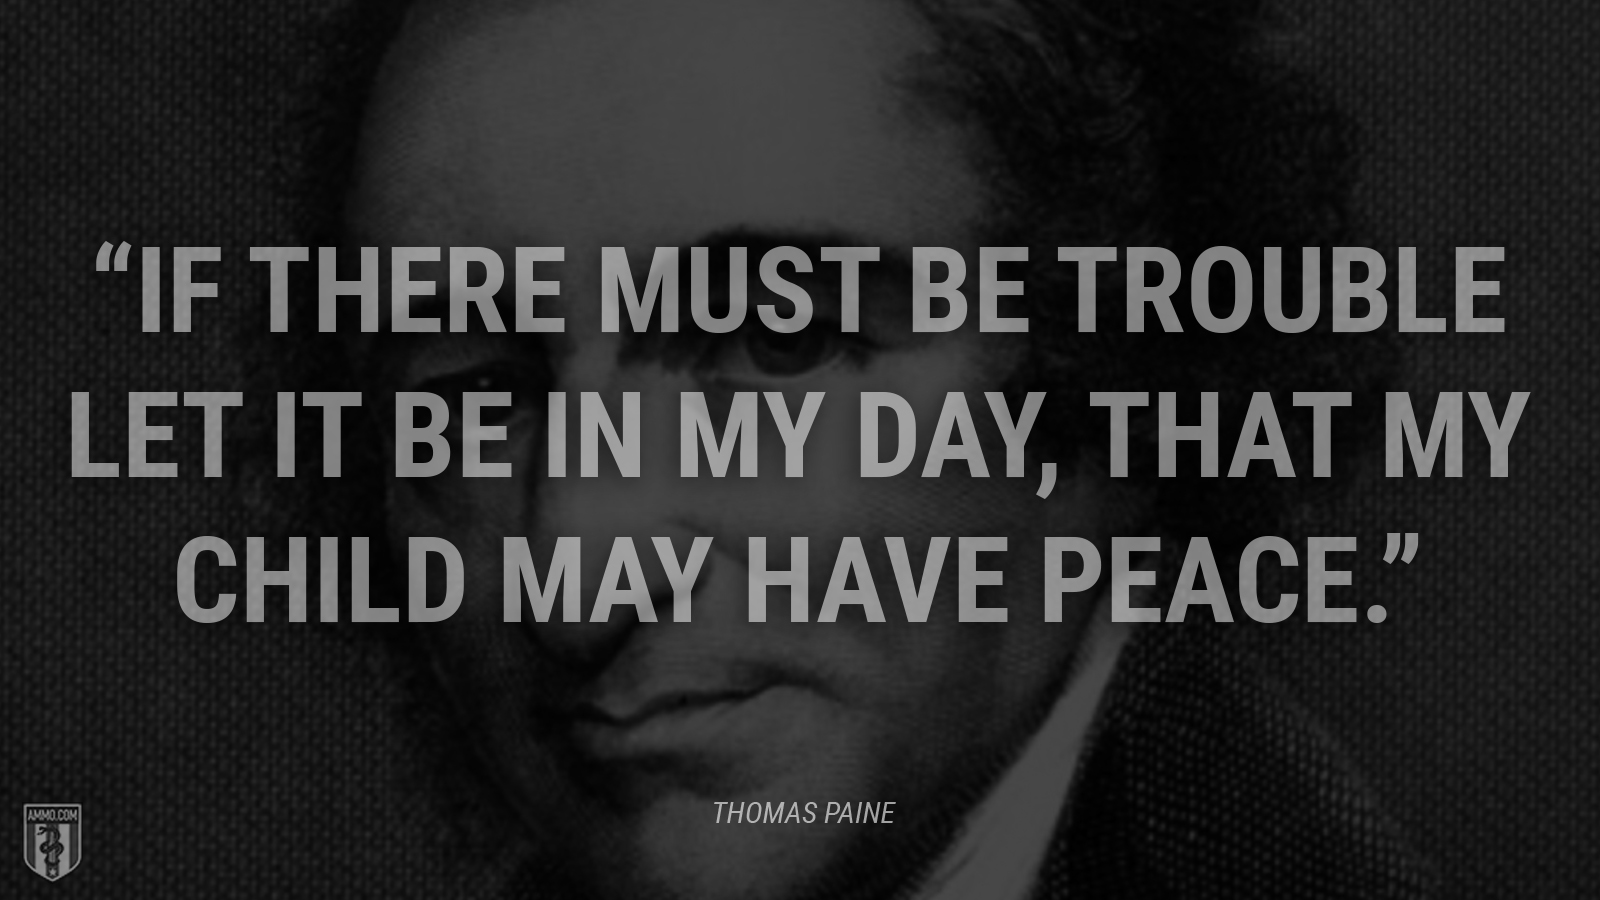 """If there must be trouble let it be in my day, that my child may have peace."" - Thomas Paine"